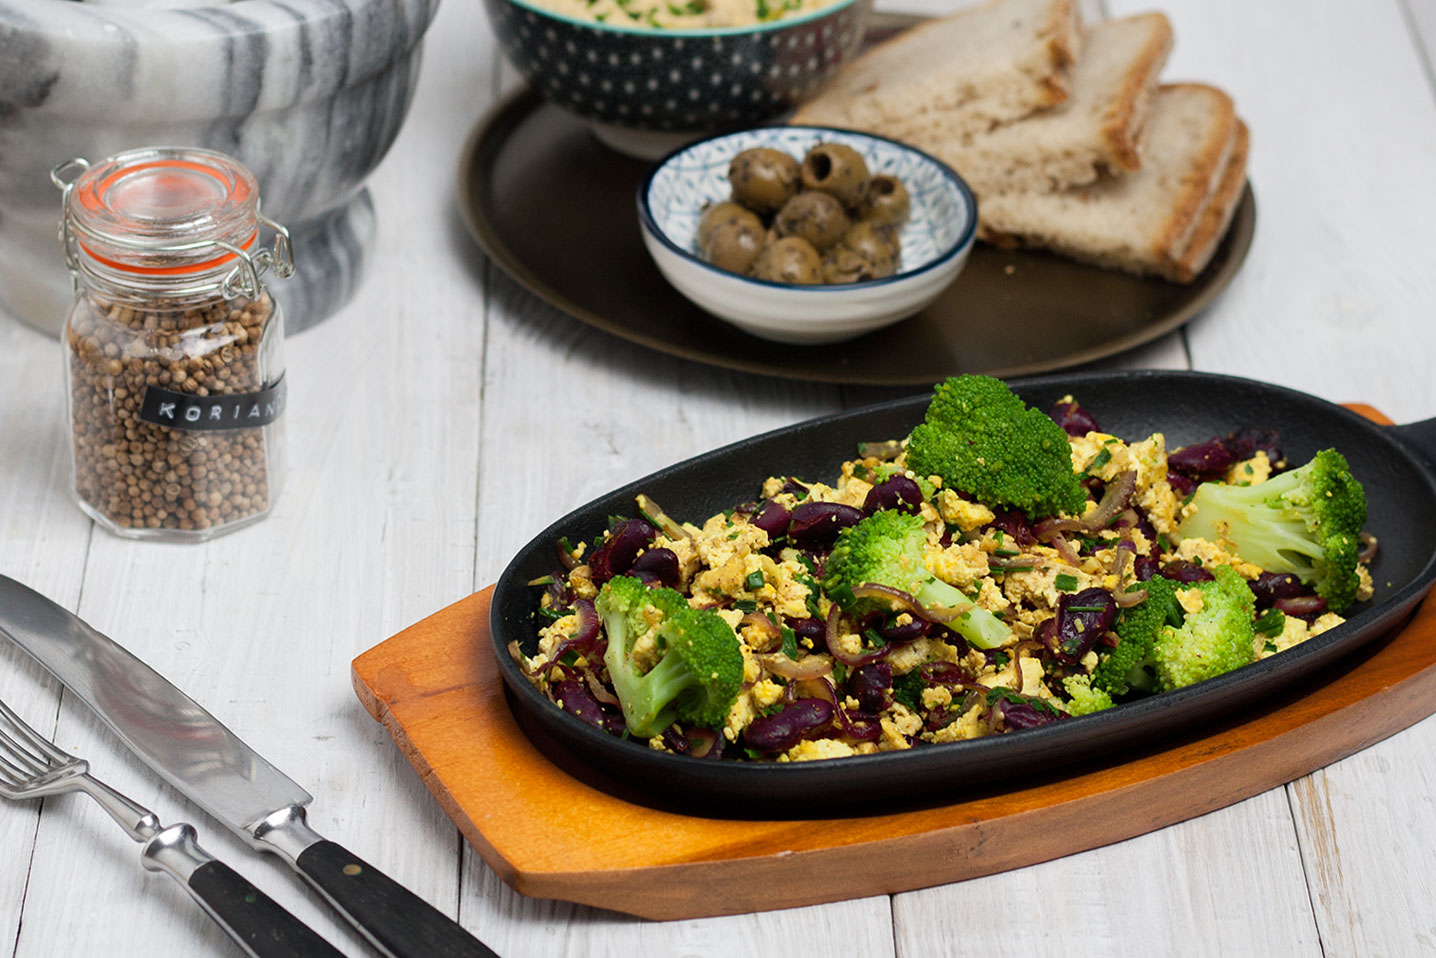 recipe for a unusual vegan breakfast skillet | Protein Breakfast Skillet vegan und glutenfrei